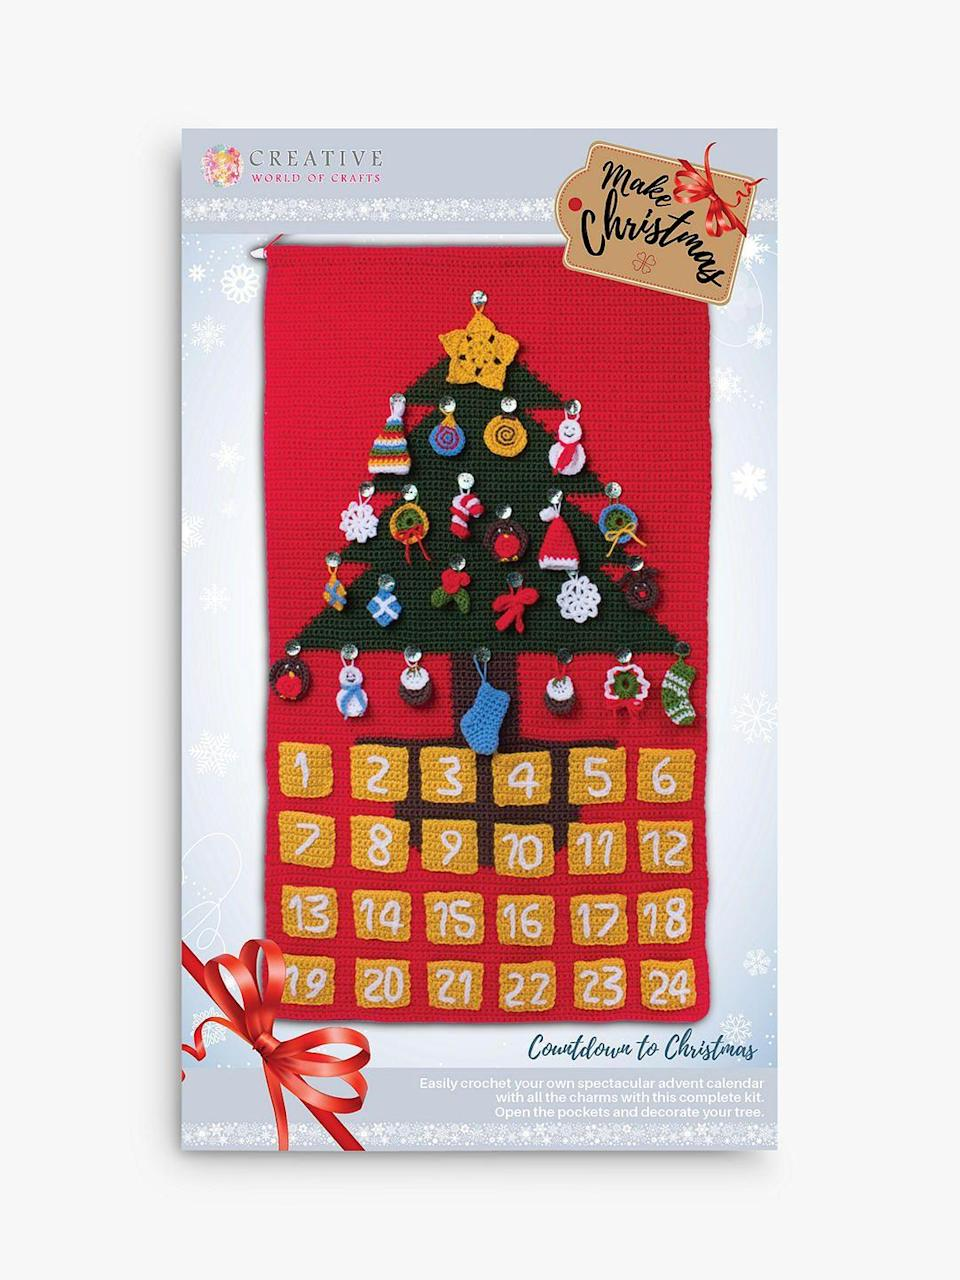 """<p><a class=""""link rapid-noclick-resp"""" href=""""https://go.redirectingat.com?id=127X1599956&url=https%3A%2F%2Fwww.johnlewis.com%2Fknitty-critters-christmas-advent-calendar-crochet-kit%2Fp4245244&sref=https%3A%2F%2Fwww.housebeautiful.com%2Fuk%2Flifestyle%2Fshopping%2Fg150%2Falternative-advent-calendar%2F"""" rel=""""nofollow noopener"""" target=""""_blank"""" data-ylk=""""slk:BUY NOW"""">BUY NOW</a> £40 via John Lewis & Partners</p><p>Crochet your own advent calendar with all the charms with this kit from Knitty Critters. It's suitable for those with intermediate crochet skills.</p>"""